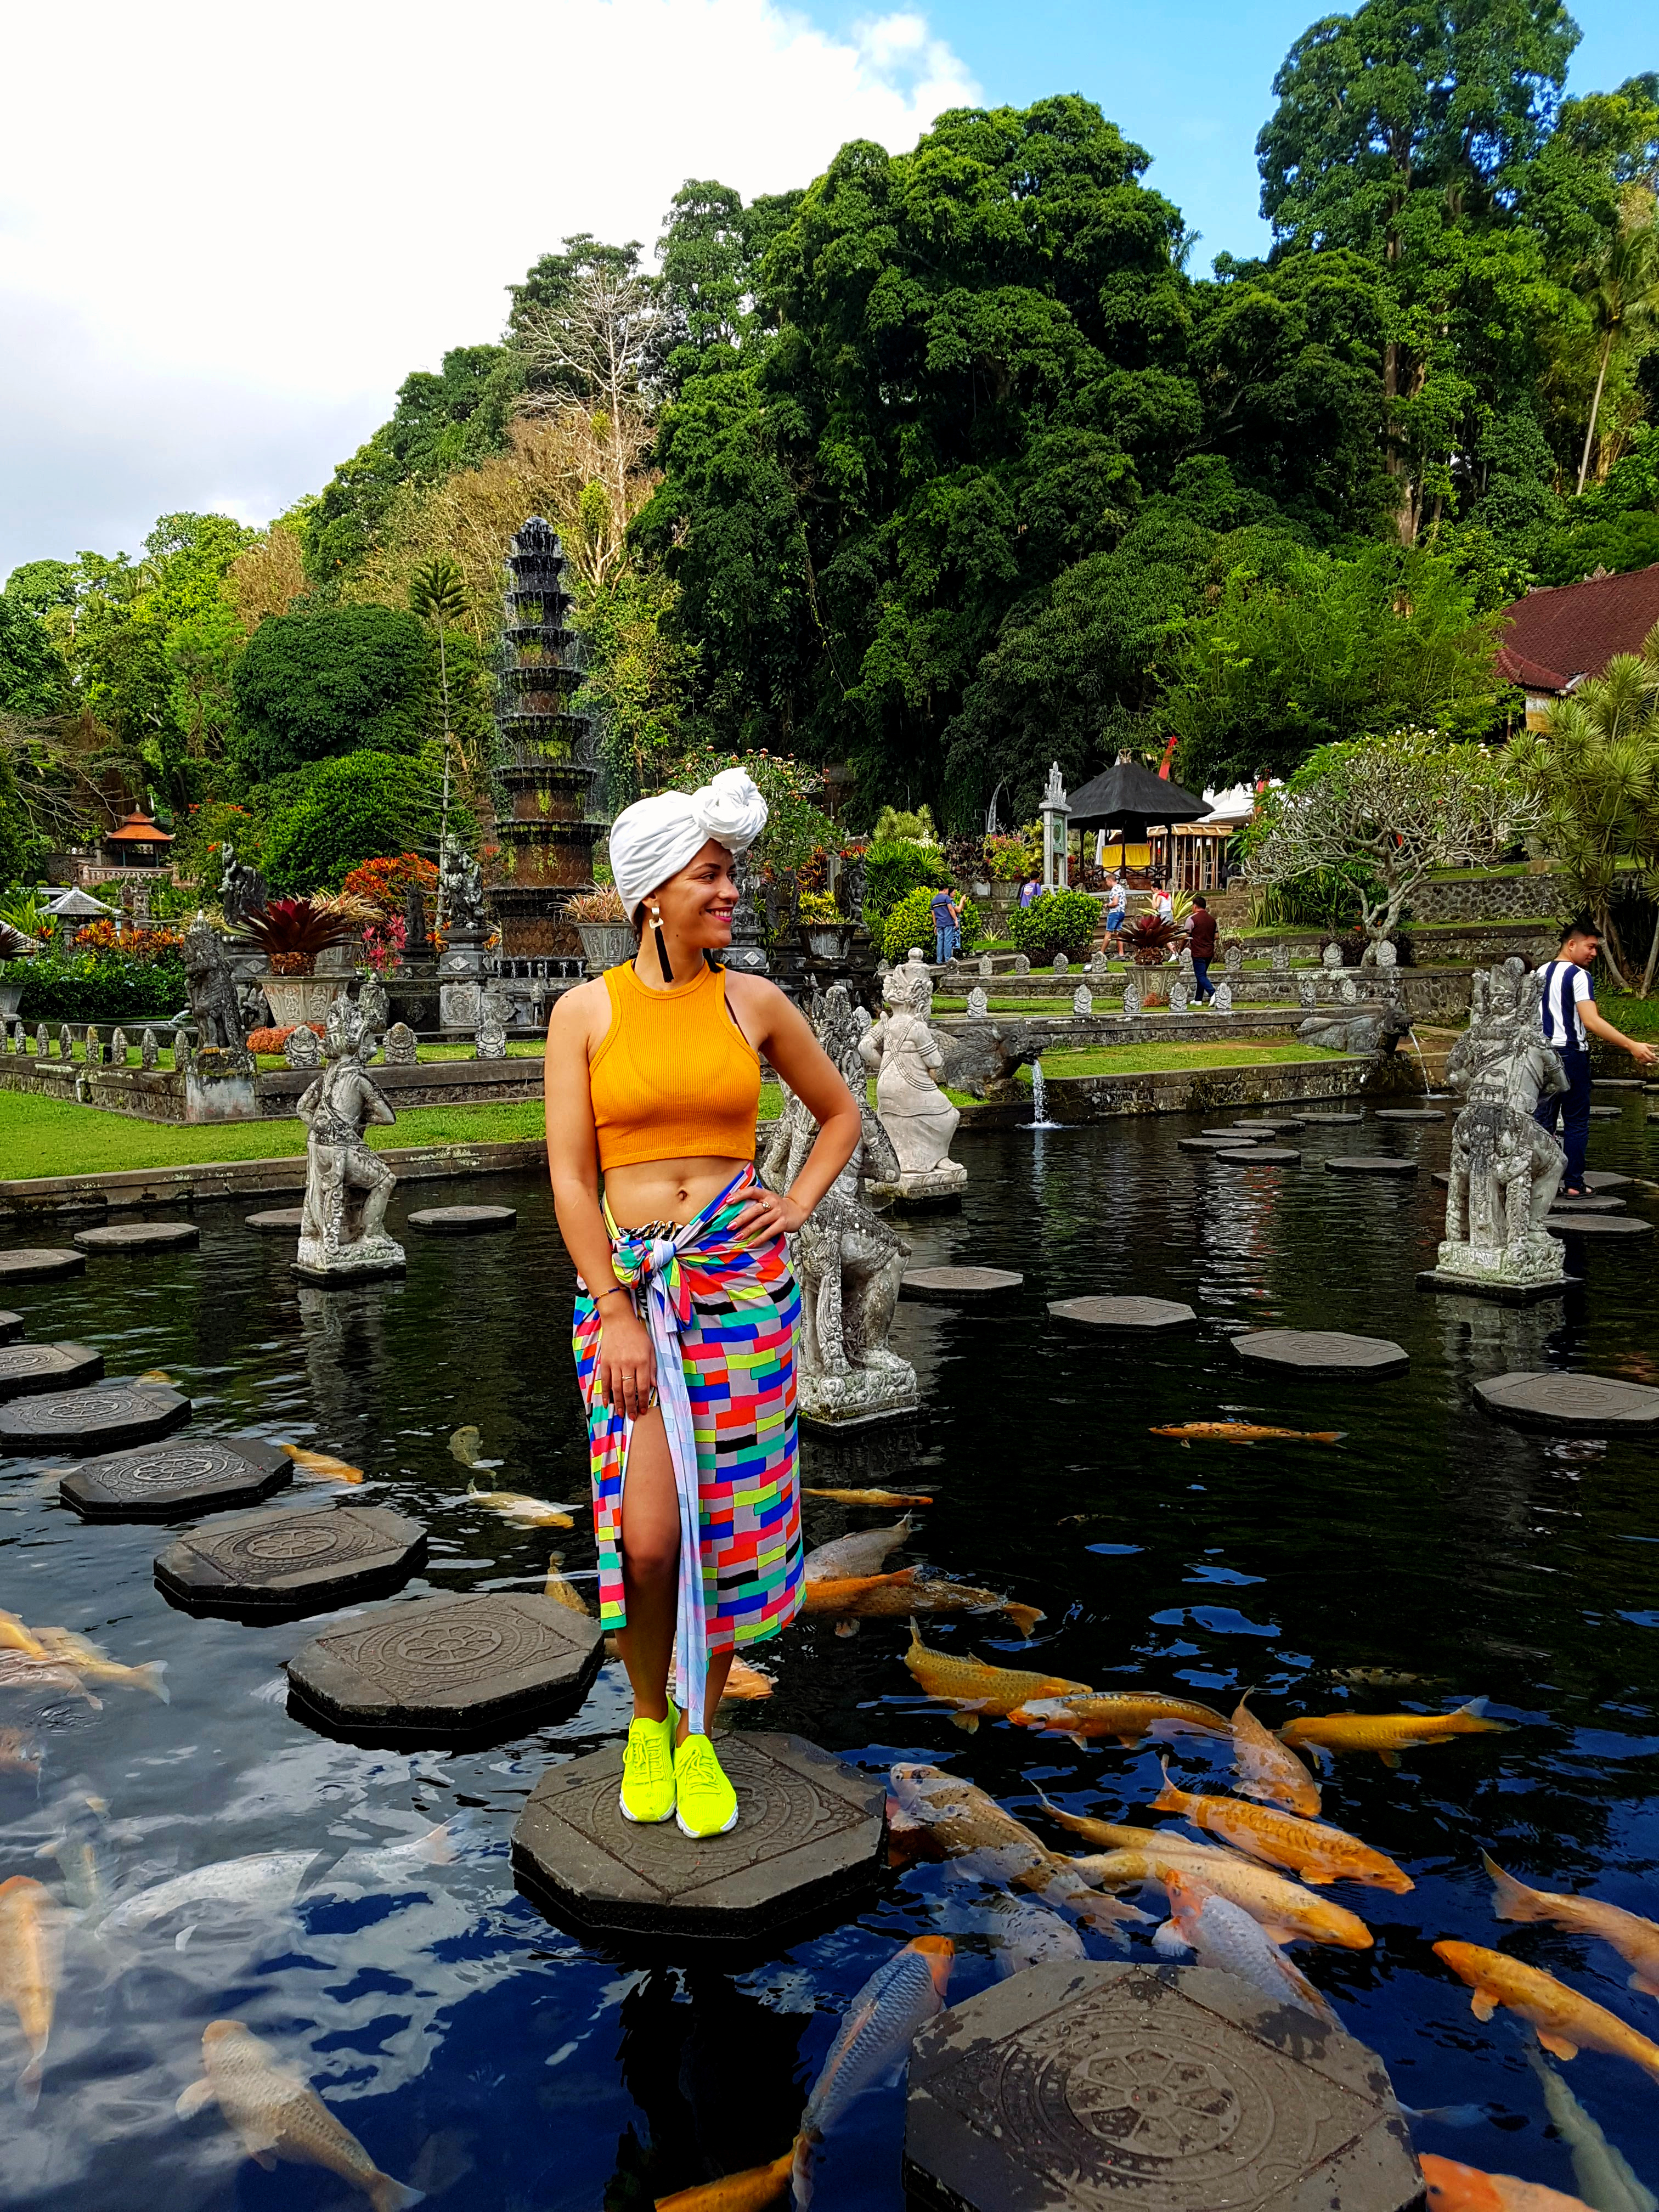 Top 7 Things To Do in Bali, Island of the Gods or Instagram Circus   Bali Travel Guide   Canggu